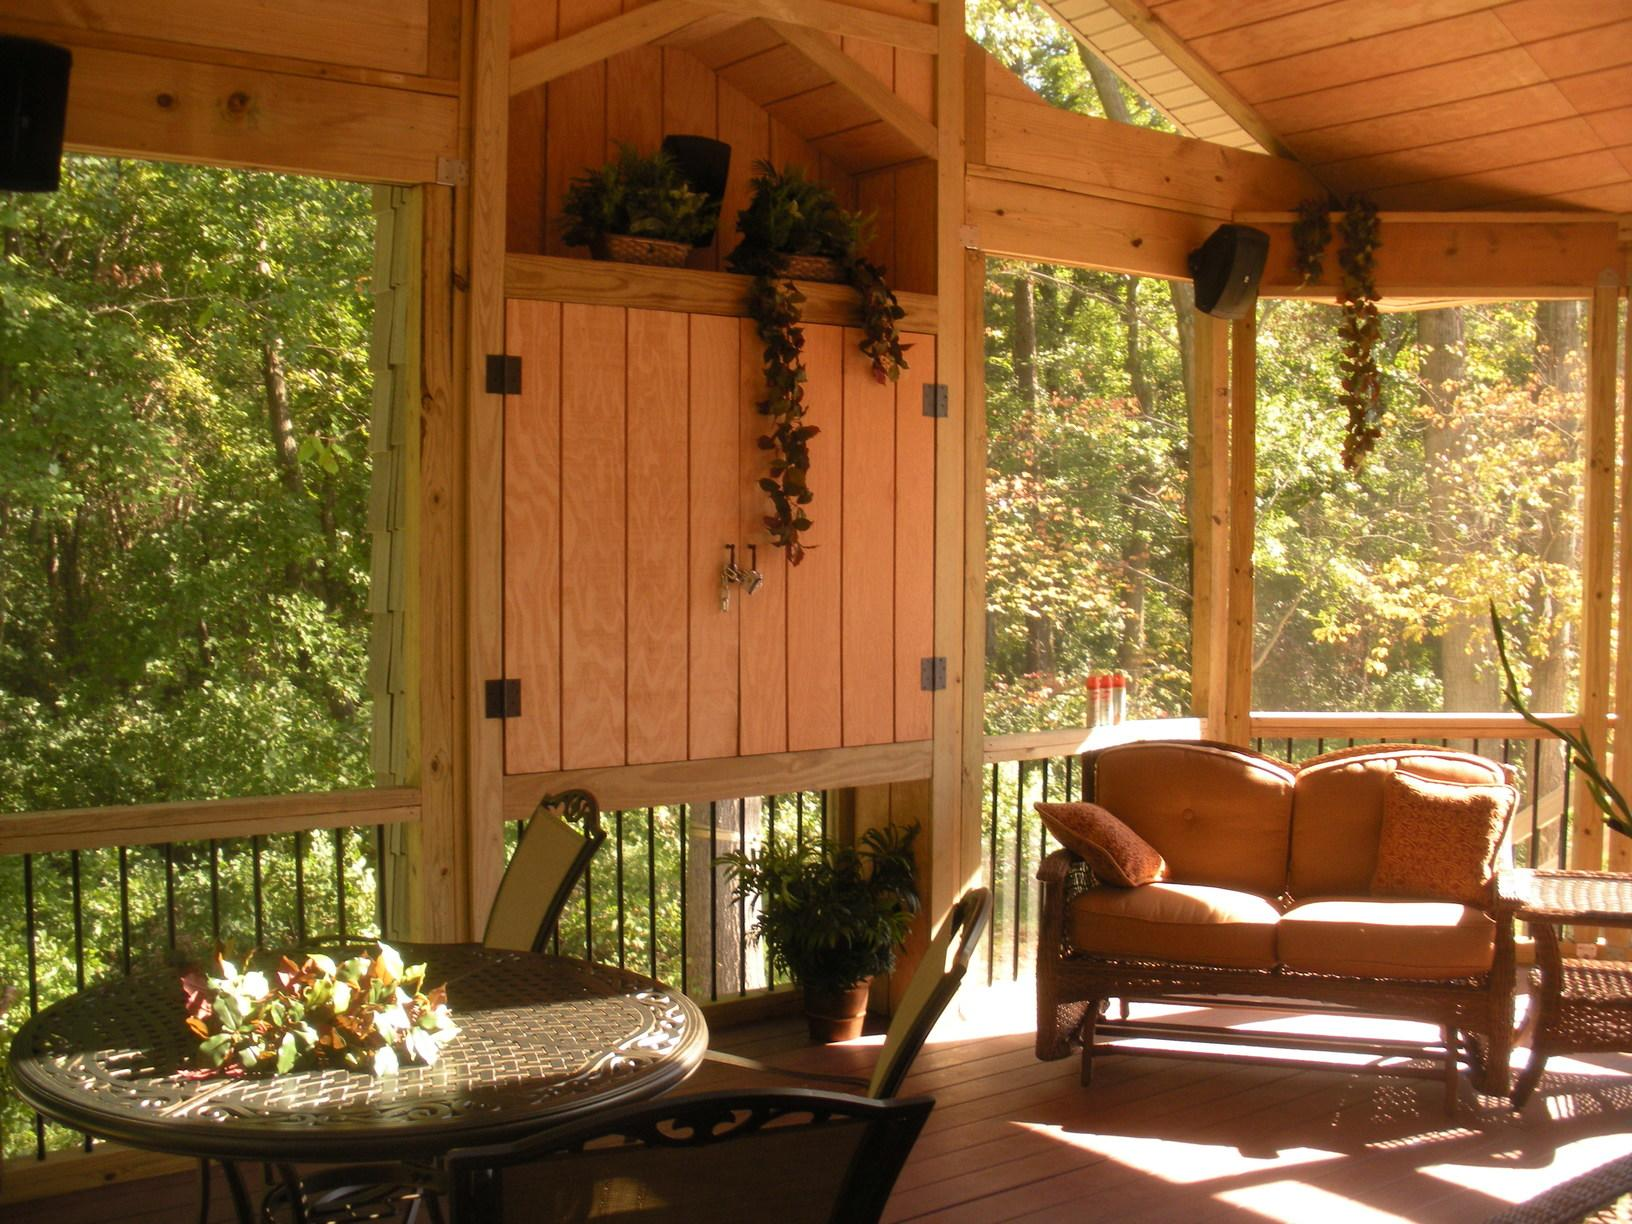 Comfortable seating inside the porch